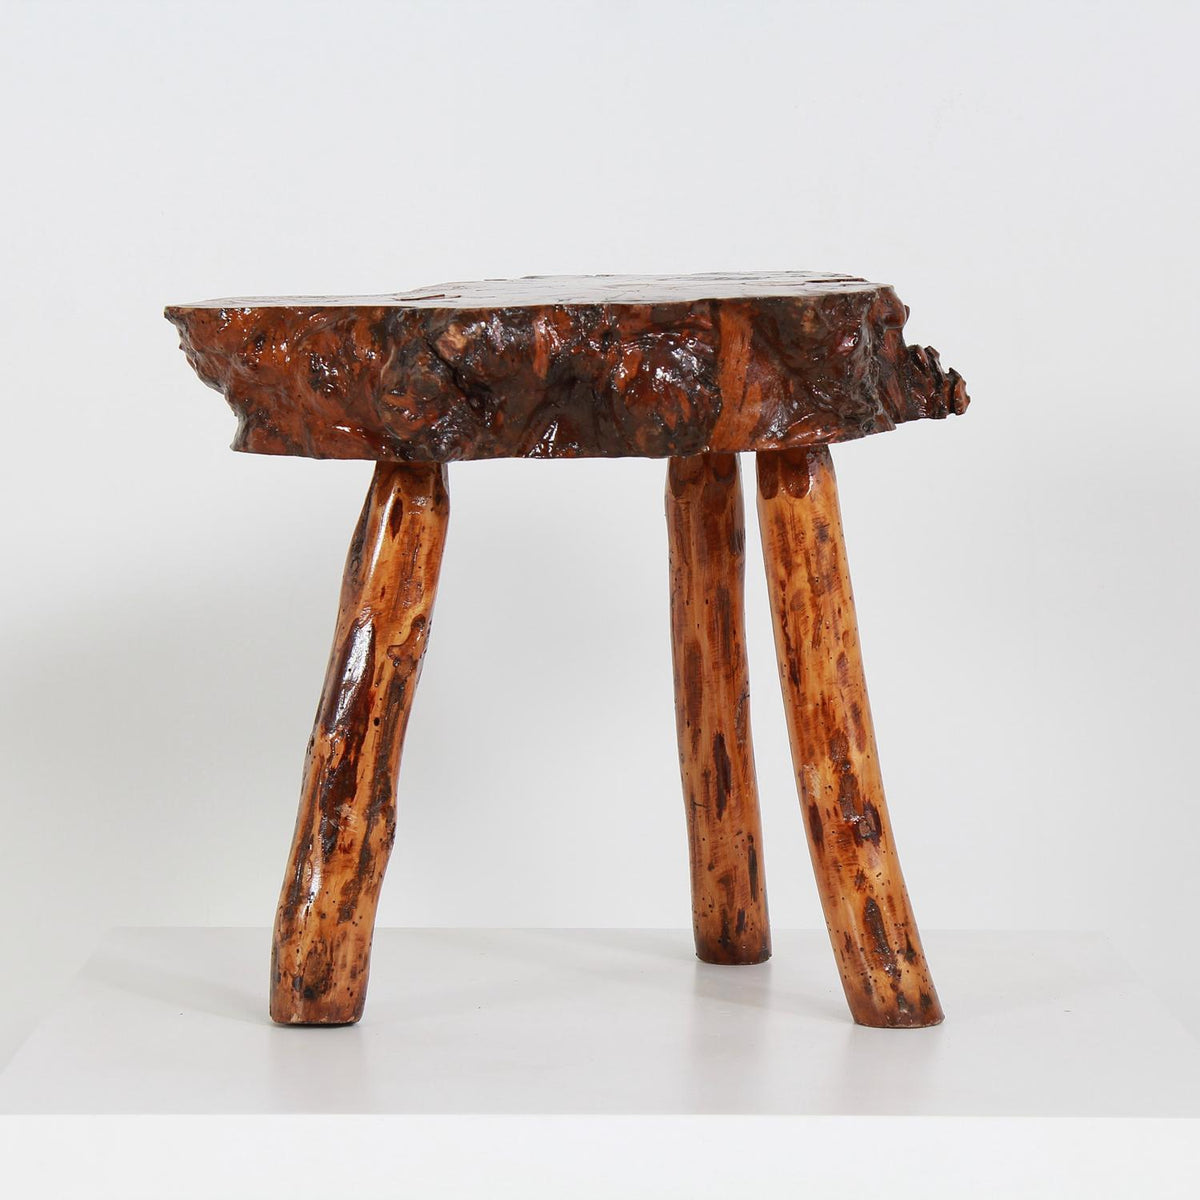 GNARLY PETRIFIED WOOD COFFEE/SIDE TABLE